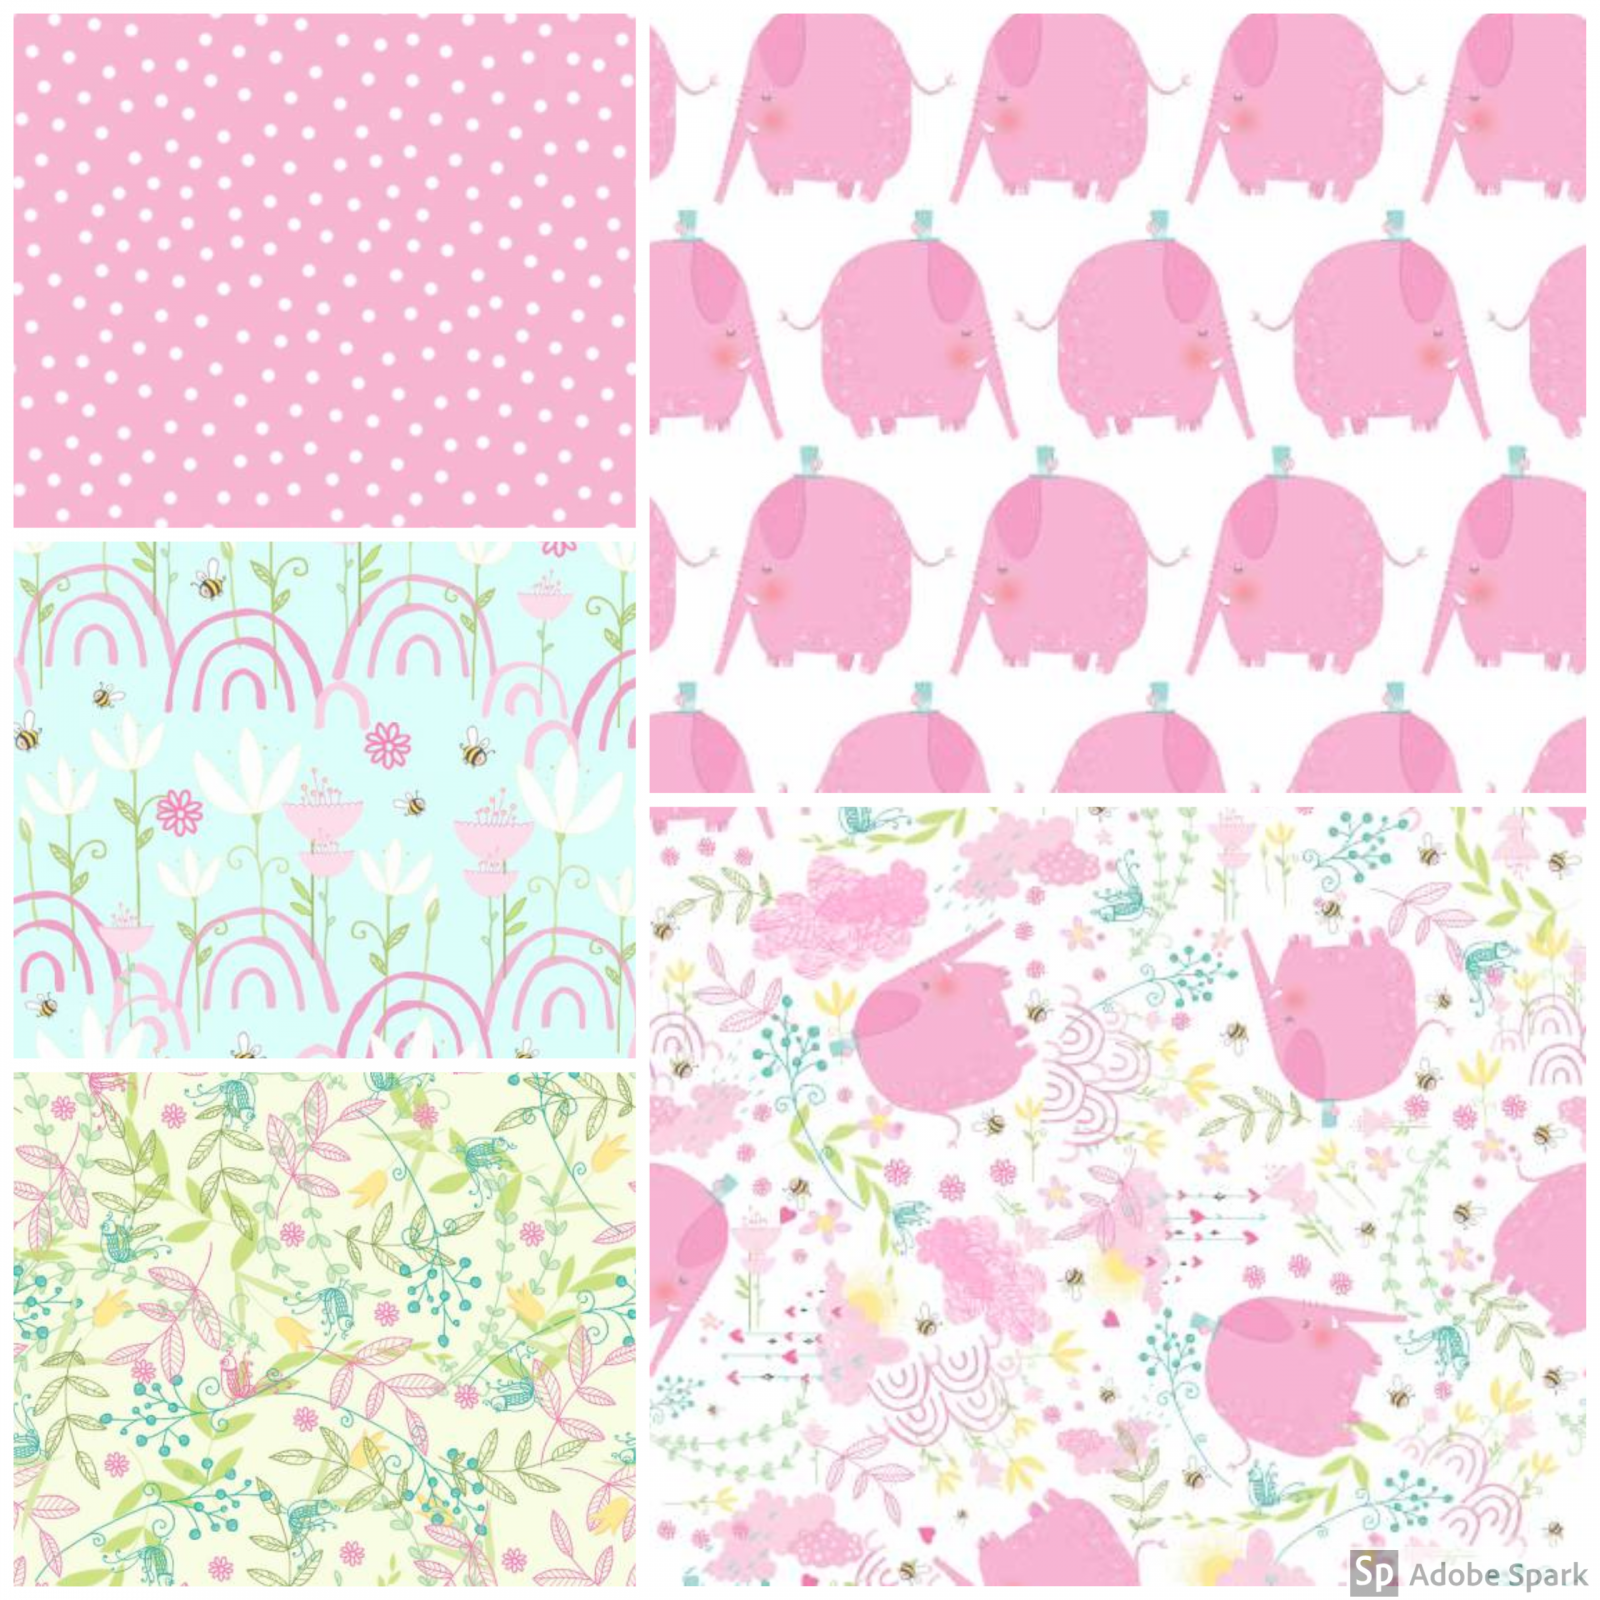 Itty Bittys - Baby Girl Fat Quarter Bundle - by 3 Wishes Fabric - Includes 5 Fat Quarters